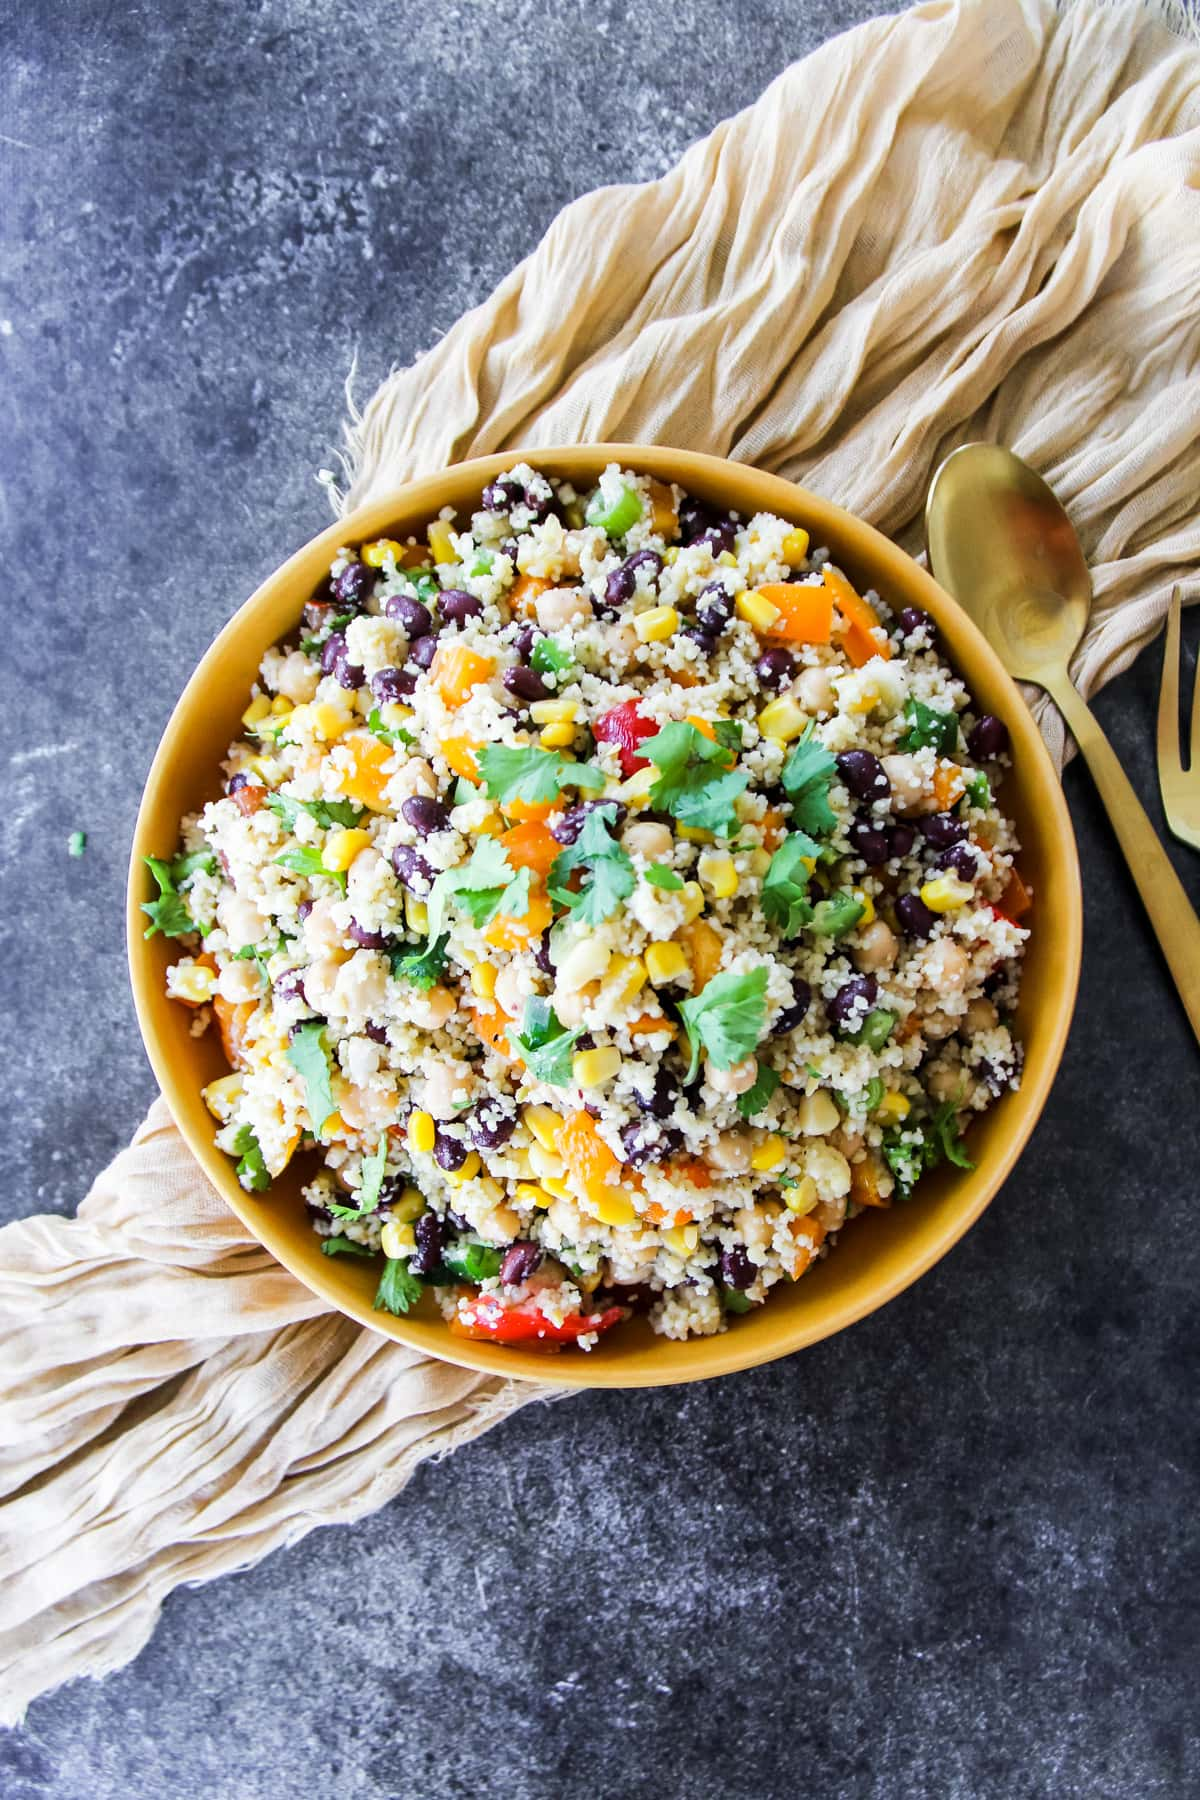 a top down view of a colourful Tex Mex Couscous Salad in a mustard yellow bowl. the bowl is sitting on a soft cream napkin and dark background. to the right is a gold spoon